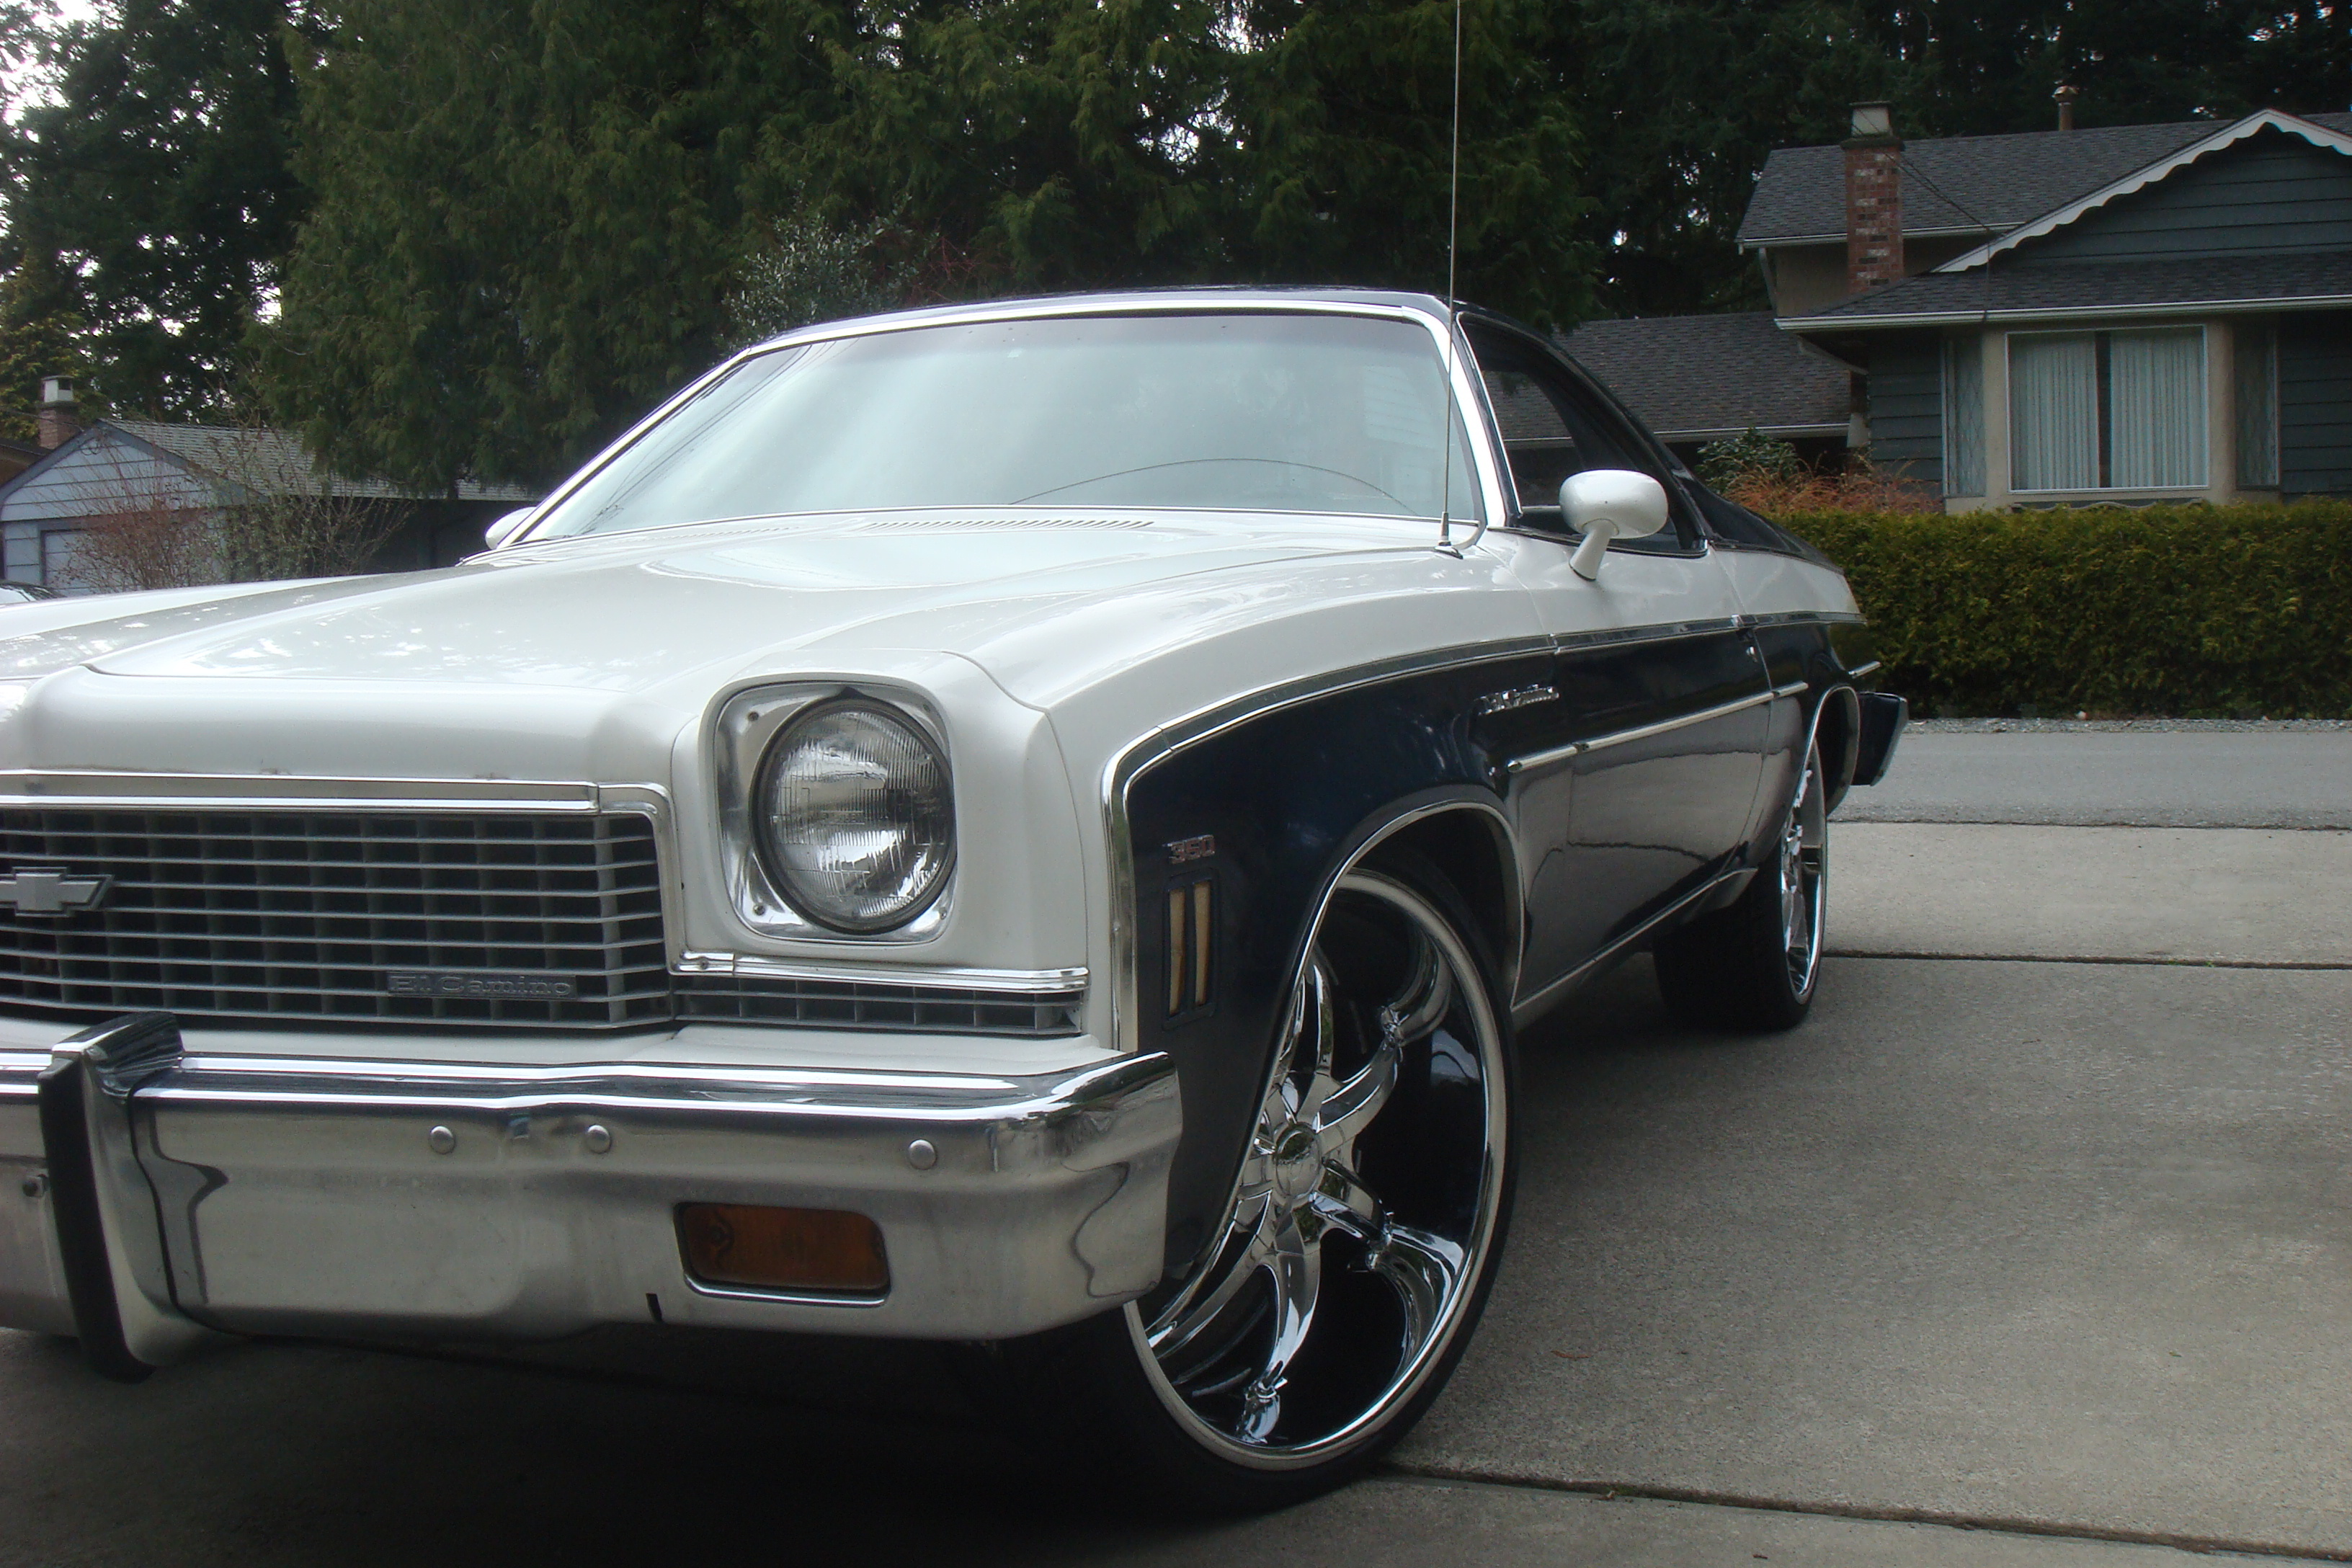 Spencer99's 1973 Chevrolet El Camino